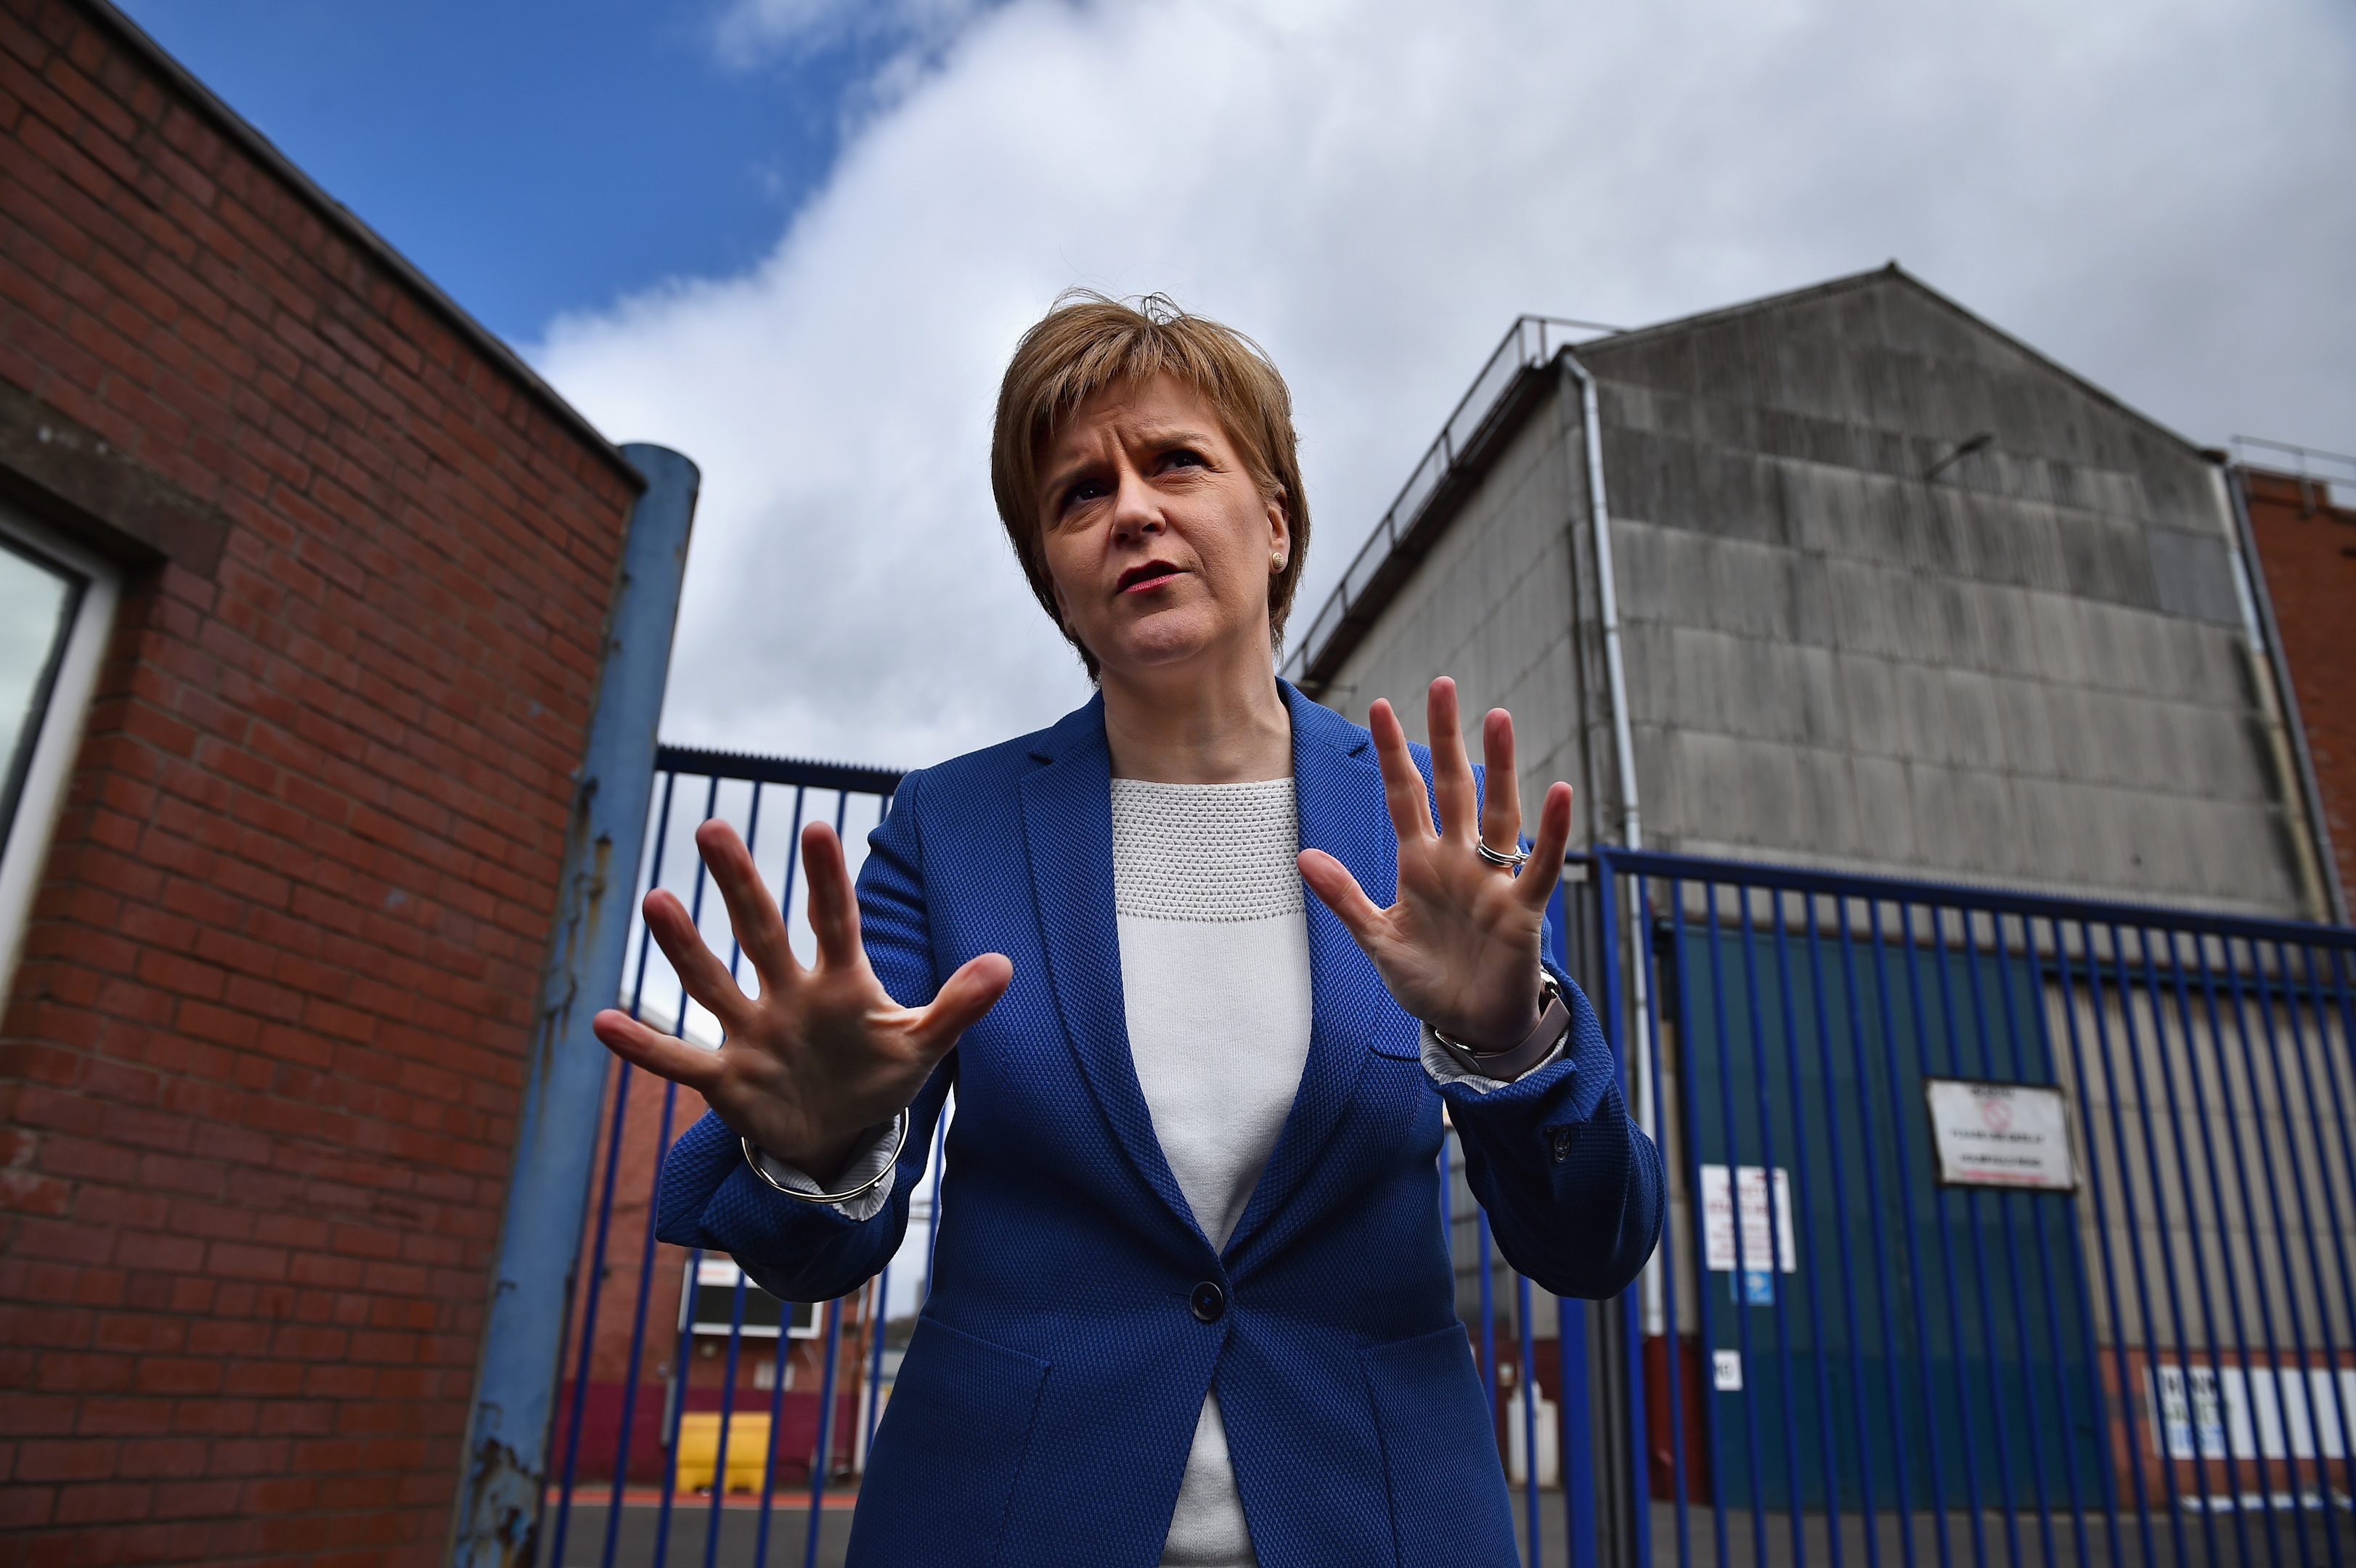 Nicola Sturgeon at BAE Systems in Govan.